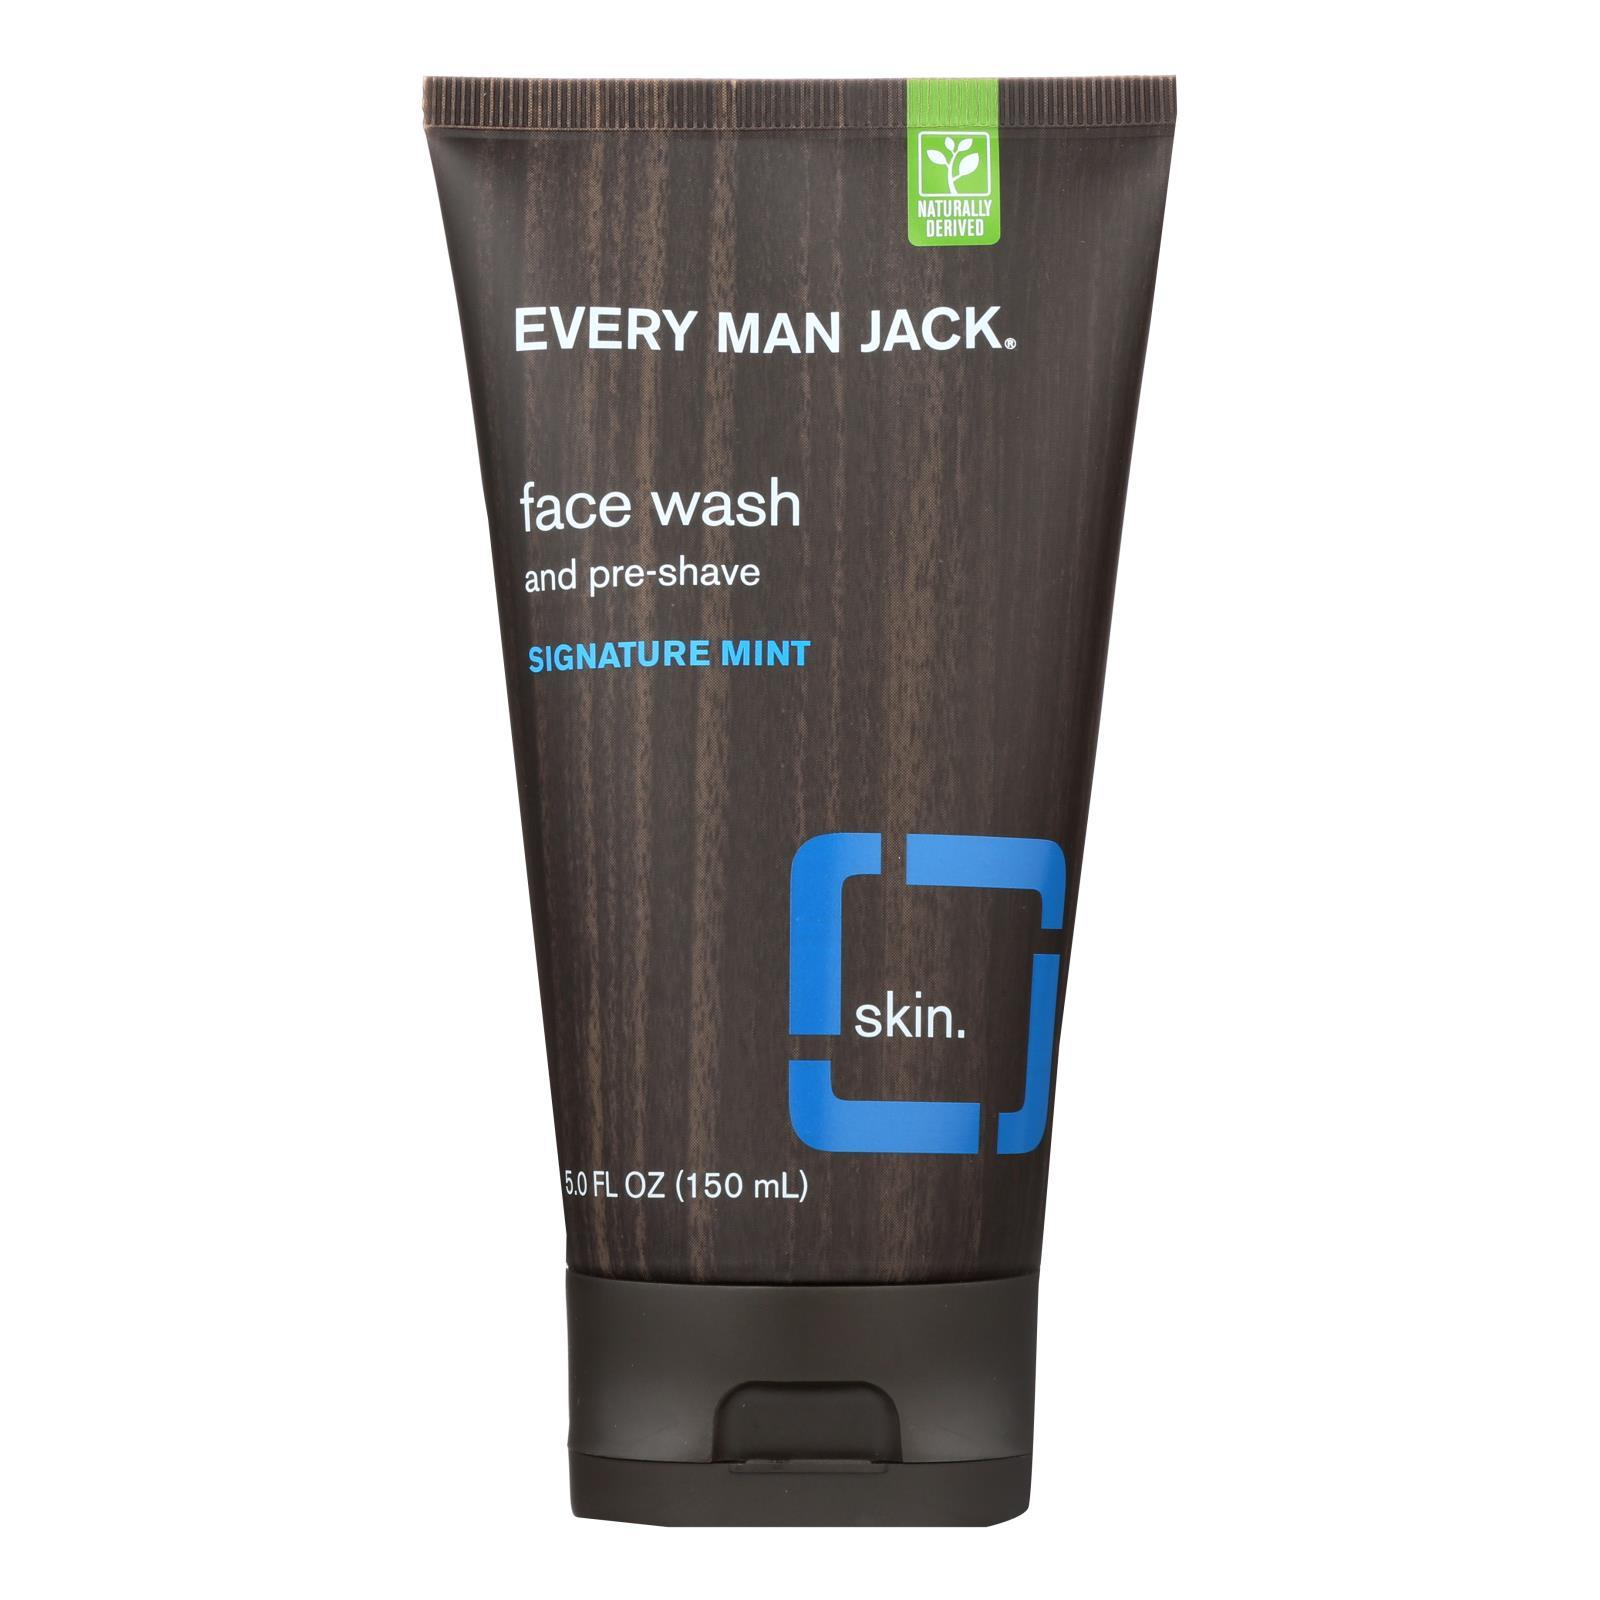 Every Man Jack Hydrating Face Wash - Face Wash - 5 Fl Oz. - BeeGreen